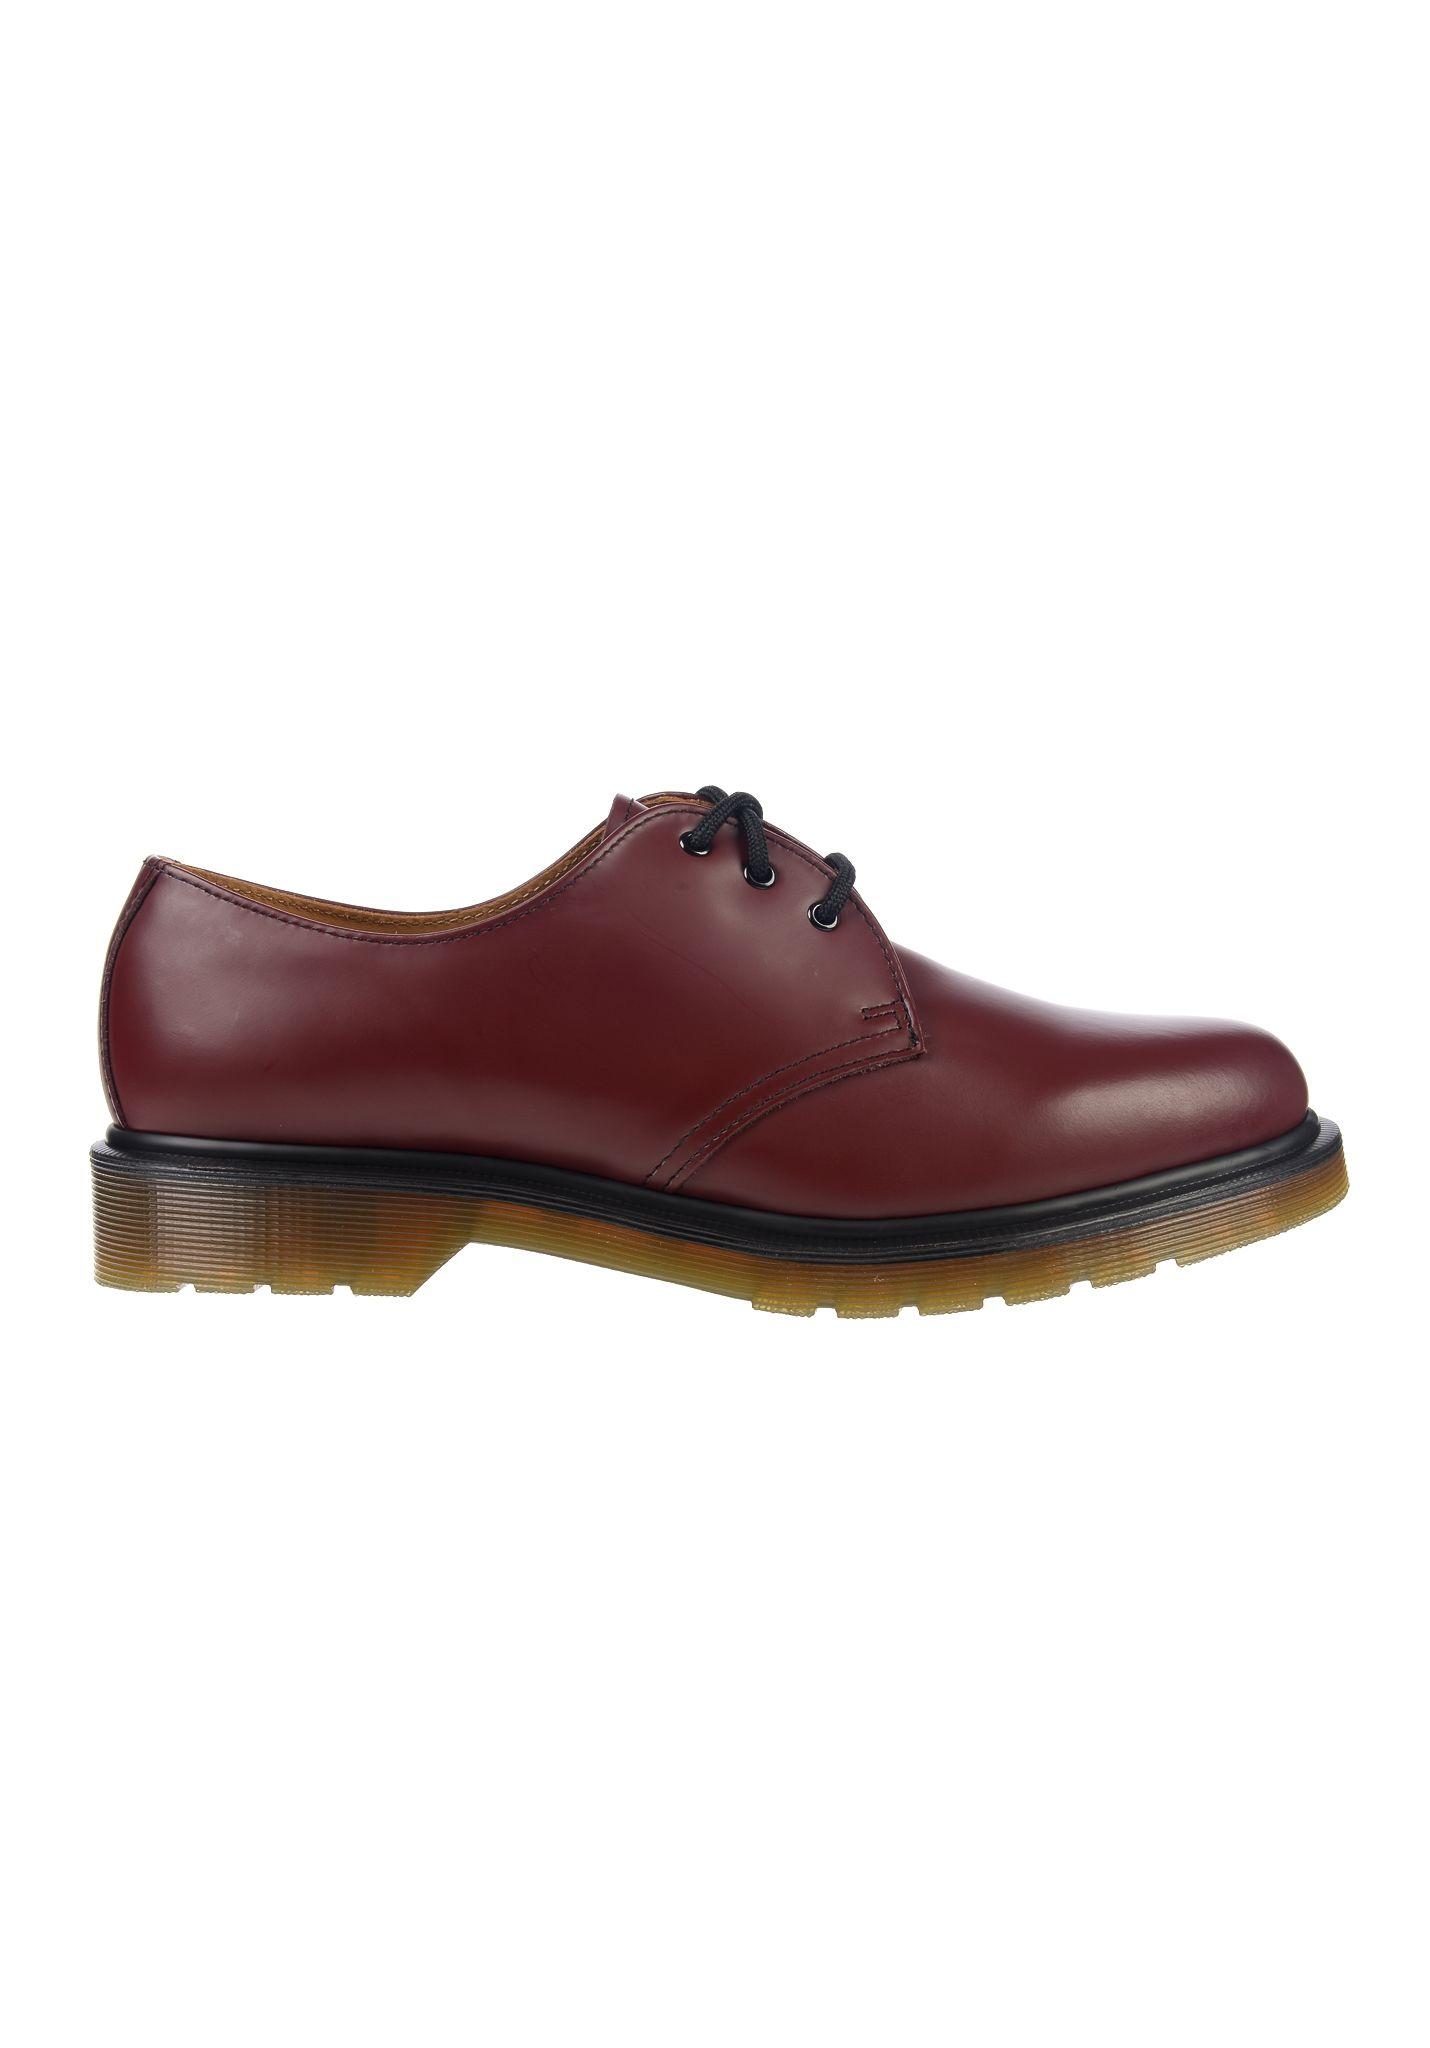 Dr Martens 1461PW Smooth 59 Last Fashion Shoes Red